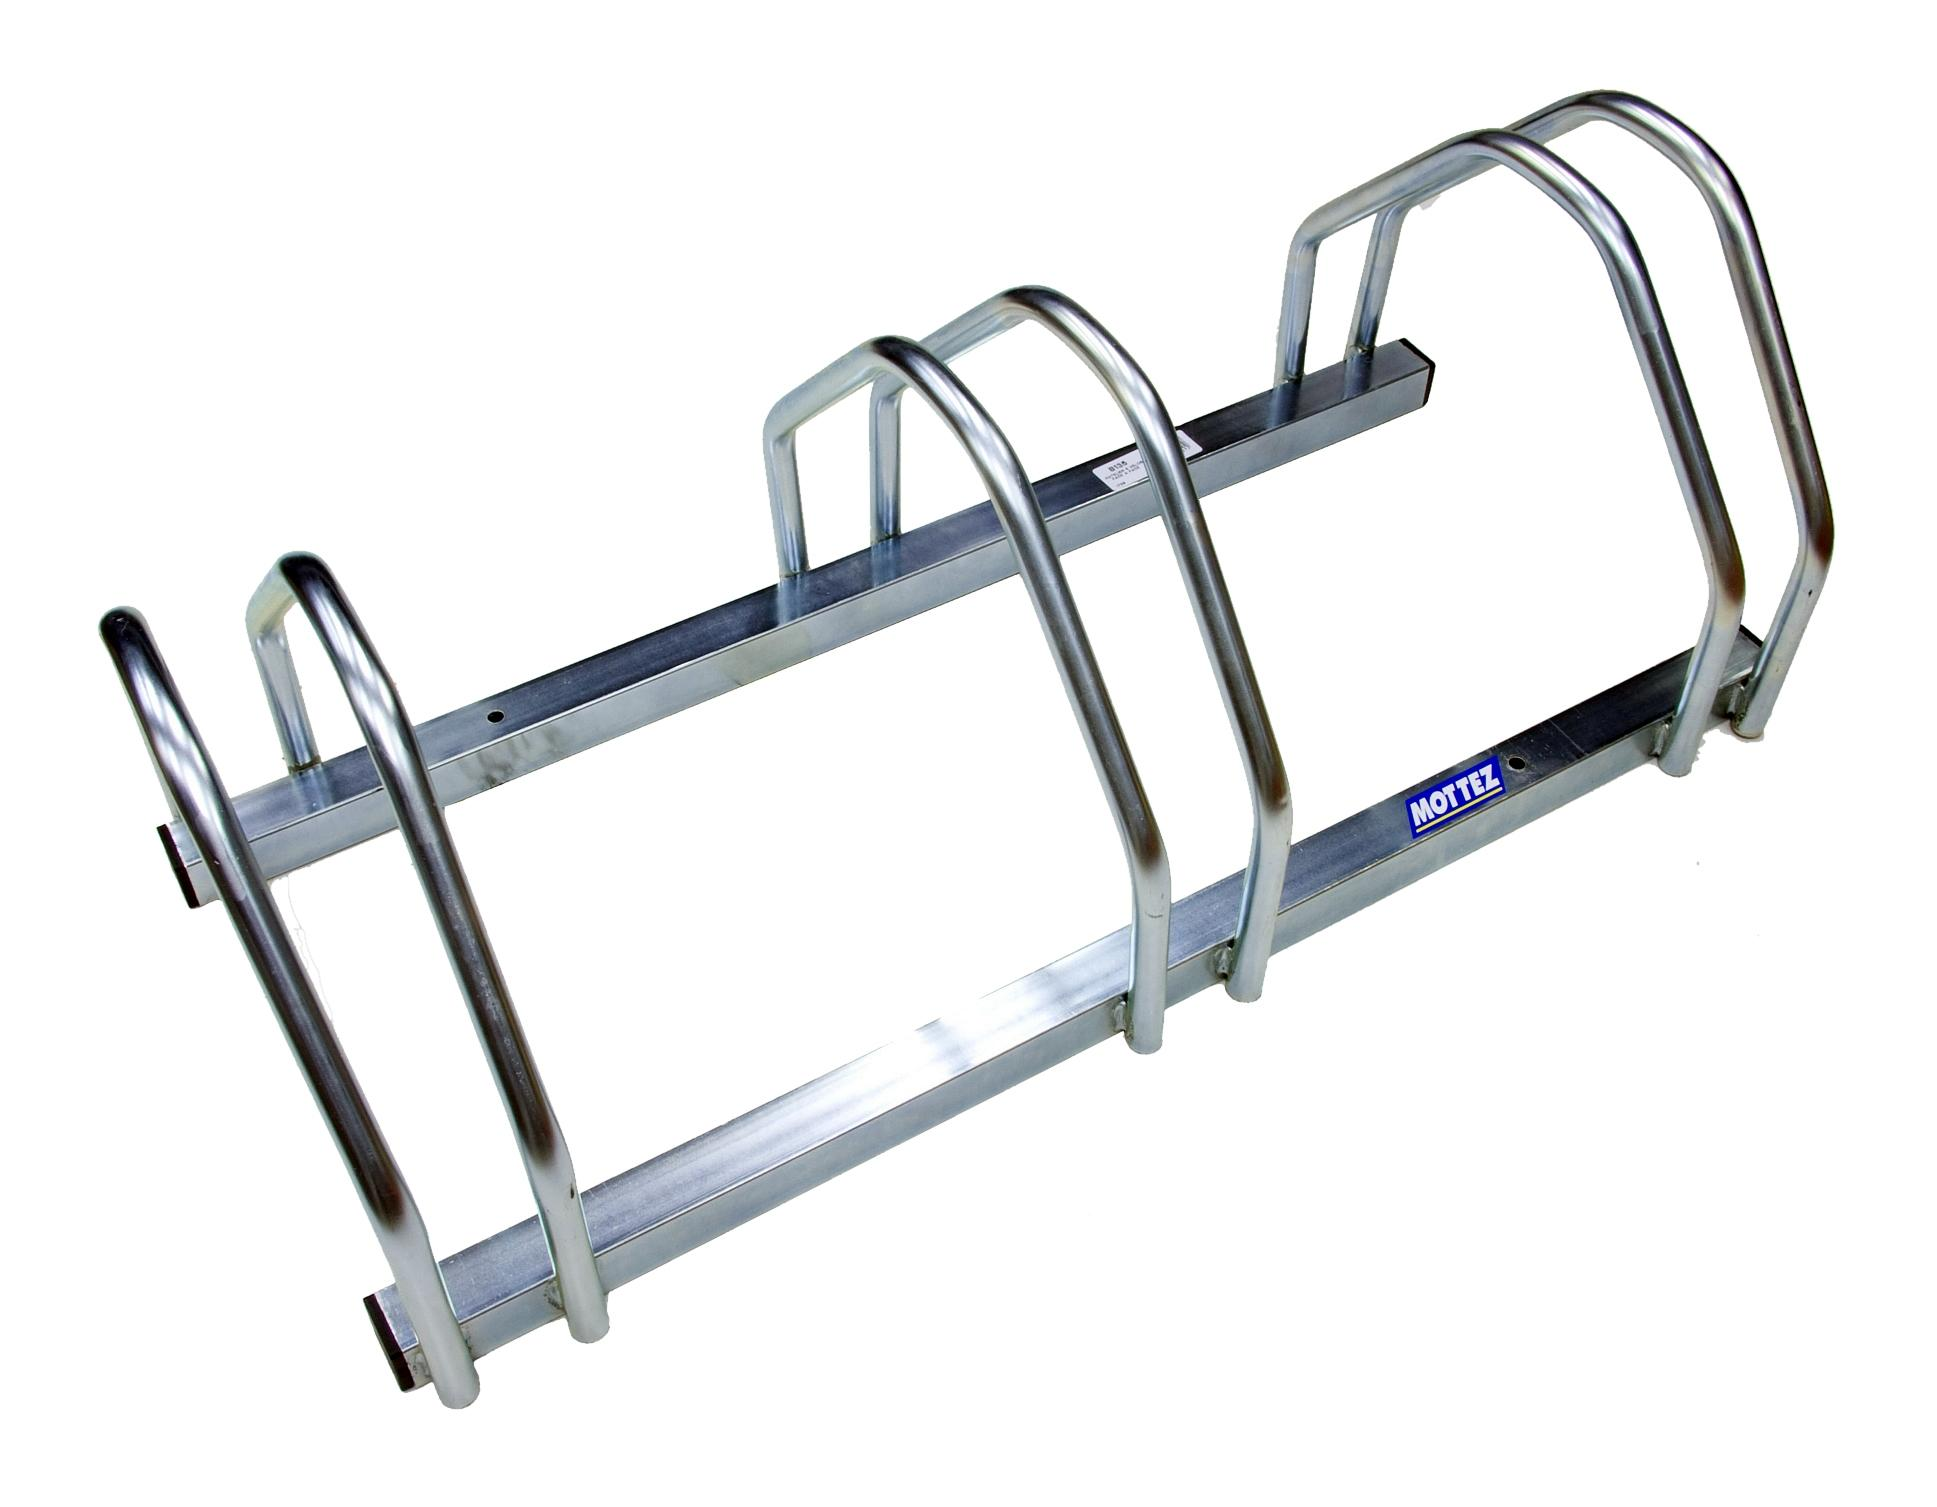 Charming Mottez 3 Bike Floor Rack